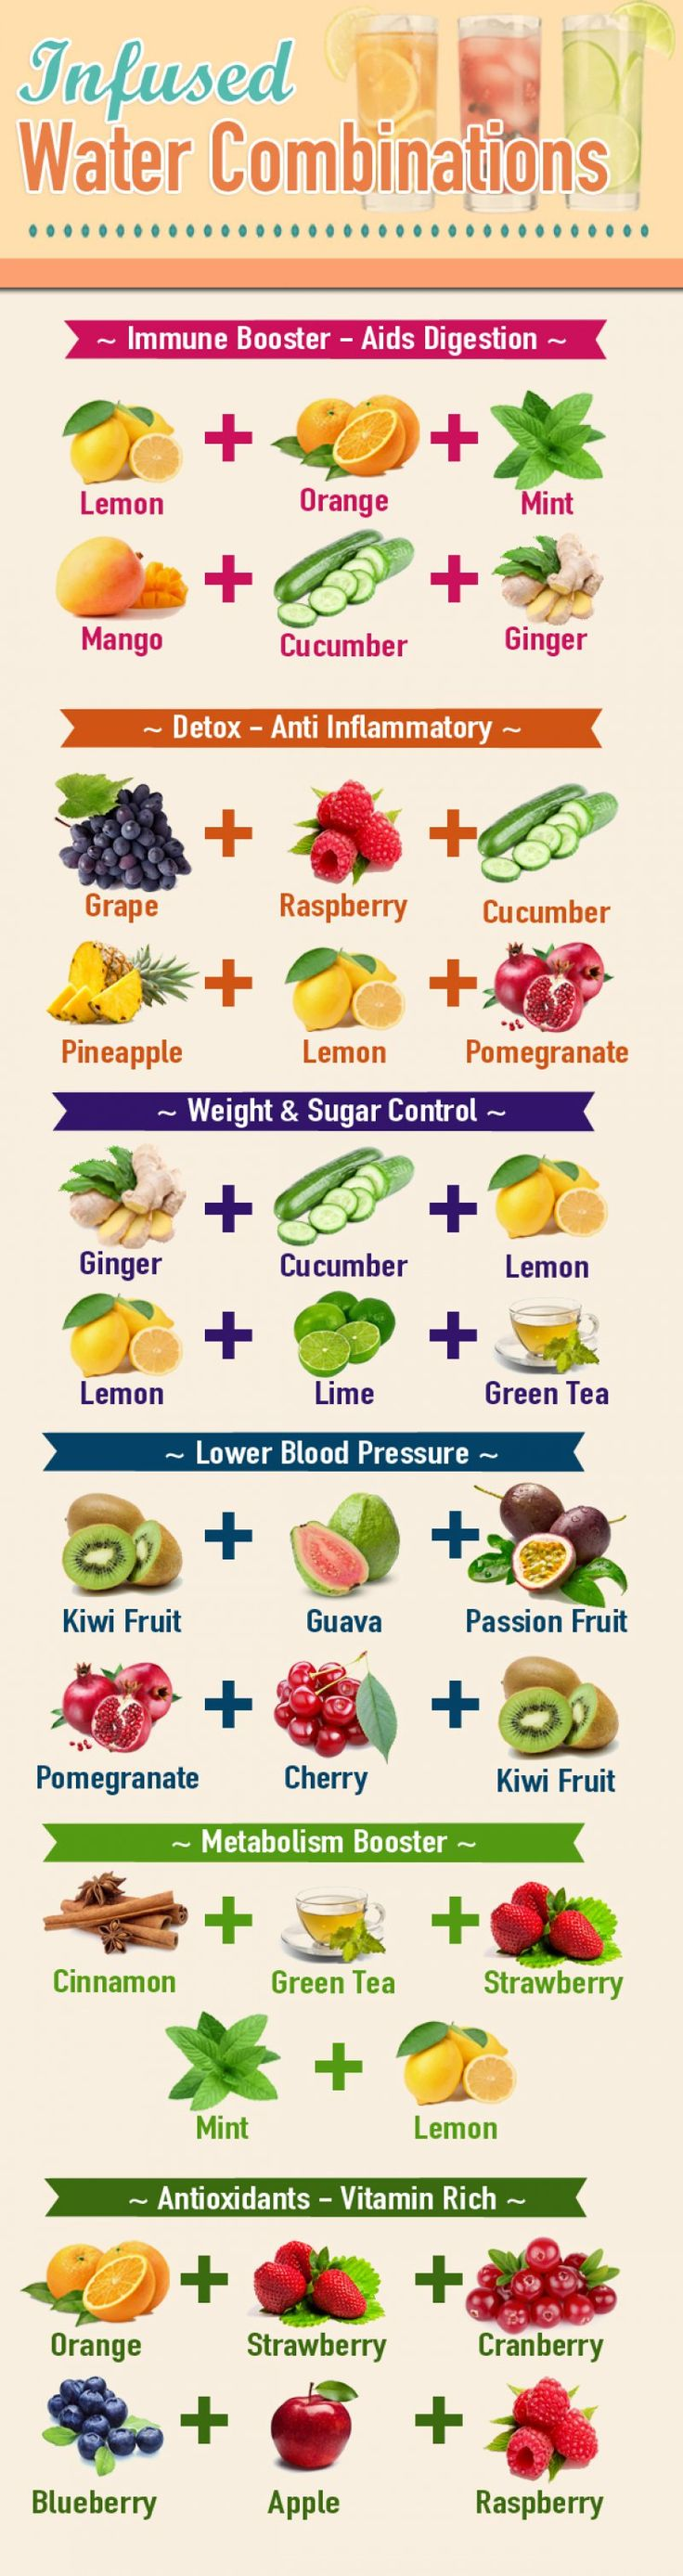 Fruit Infused Water Recipes that will get your day off to a great start!